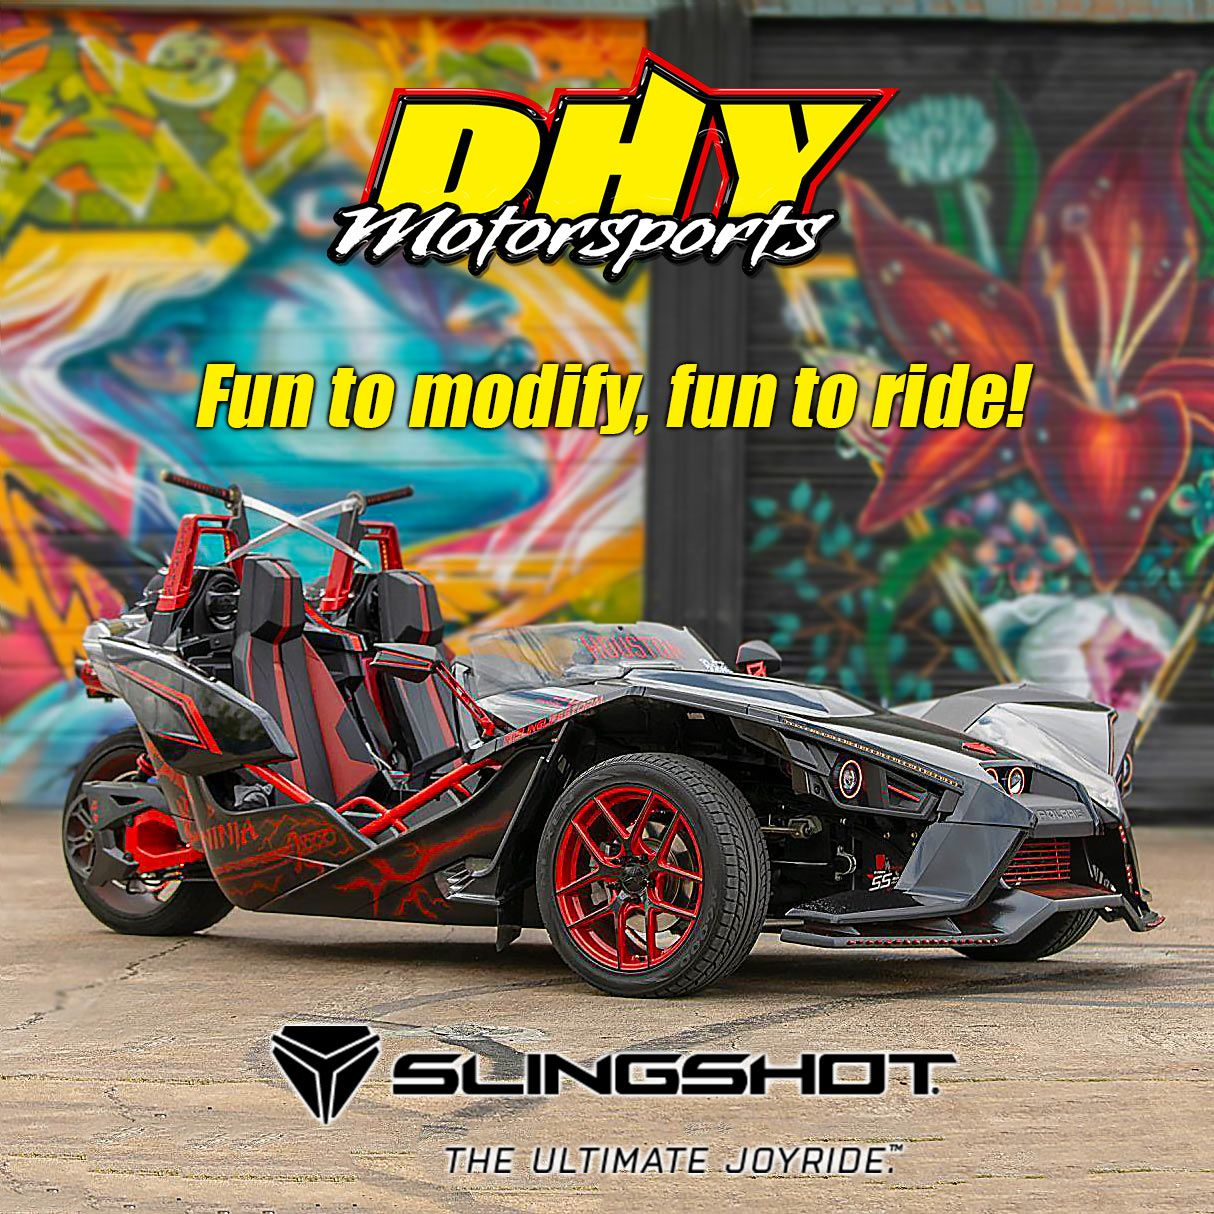 Dhymotorsports has 2019 polaris slingshots the fun and